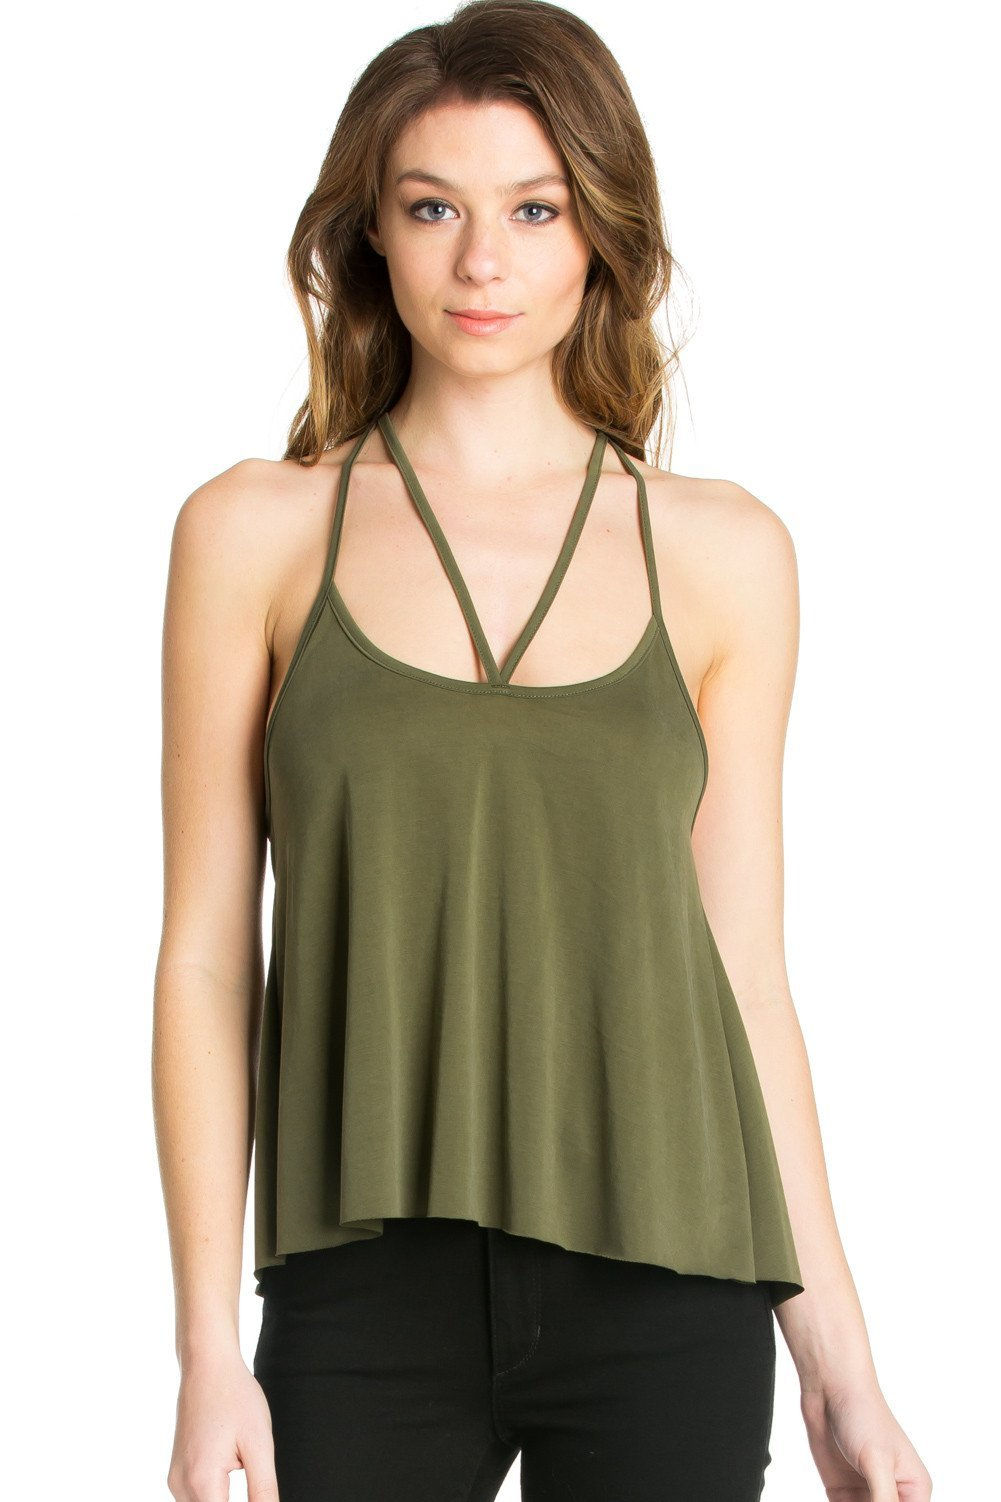 b9579ea154960 Criss Cross Front T-Back Tank Top in Olive